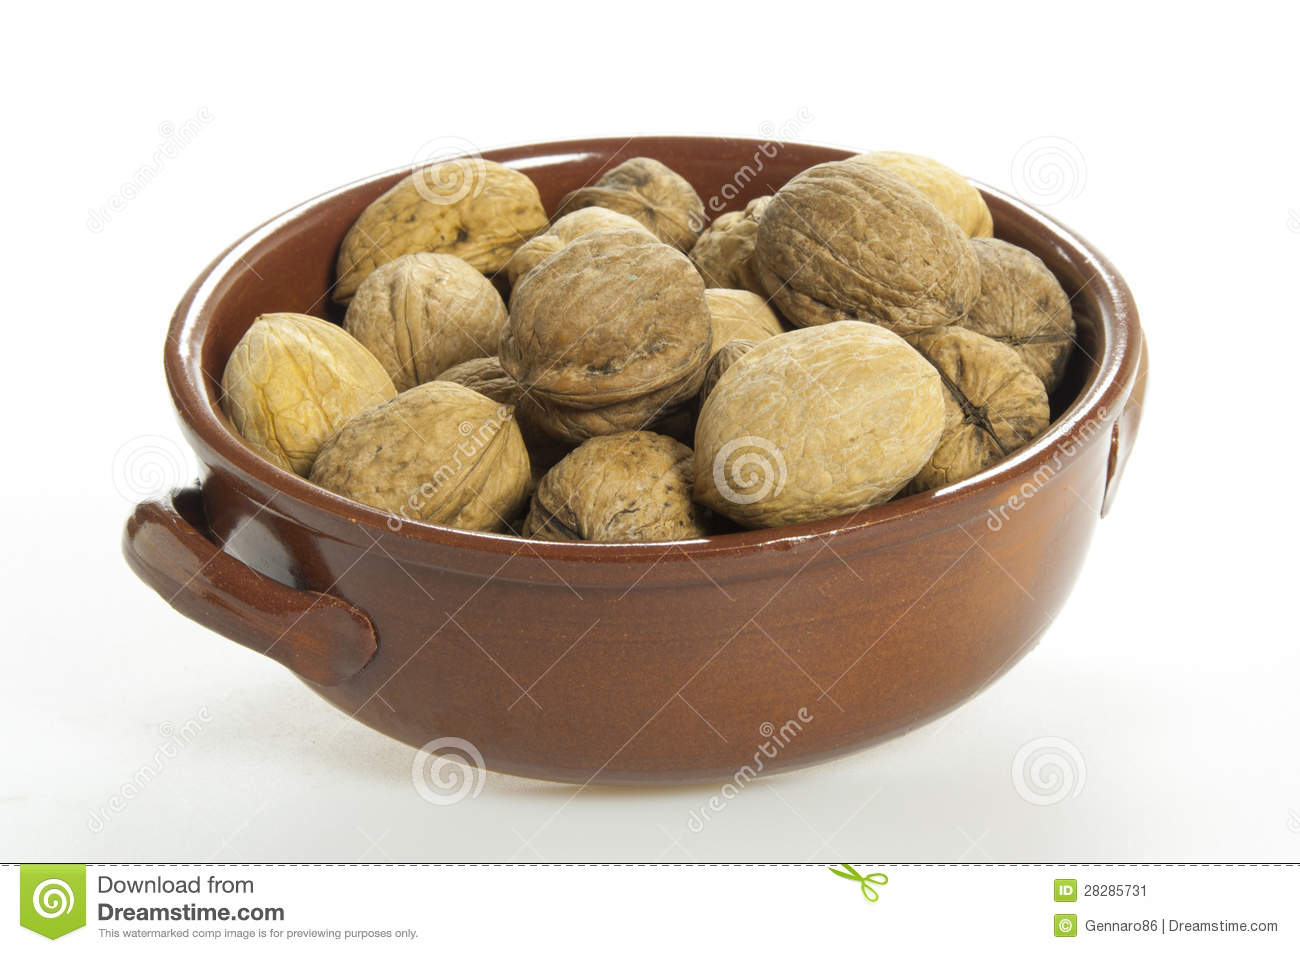 Walnuts in a cup